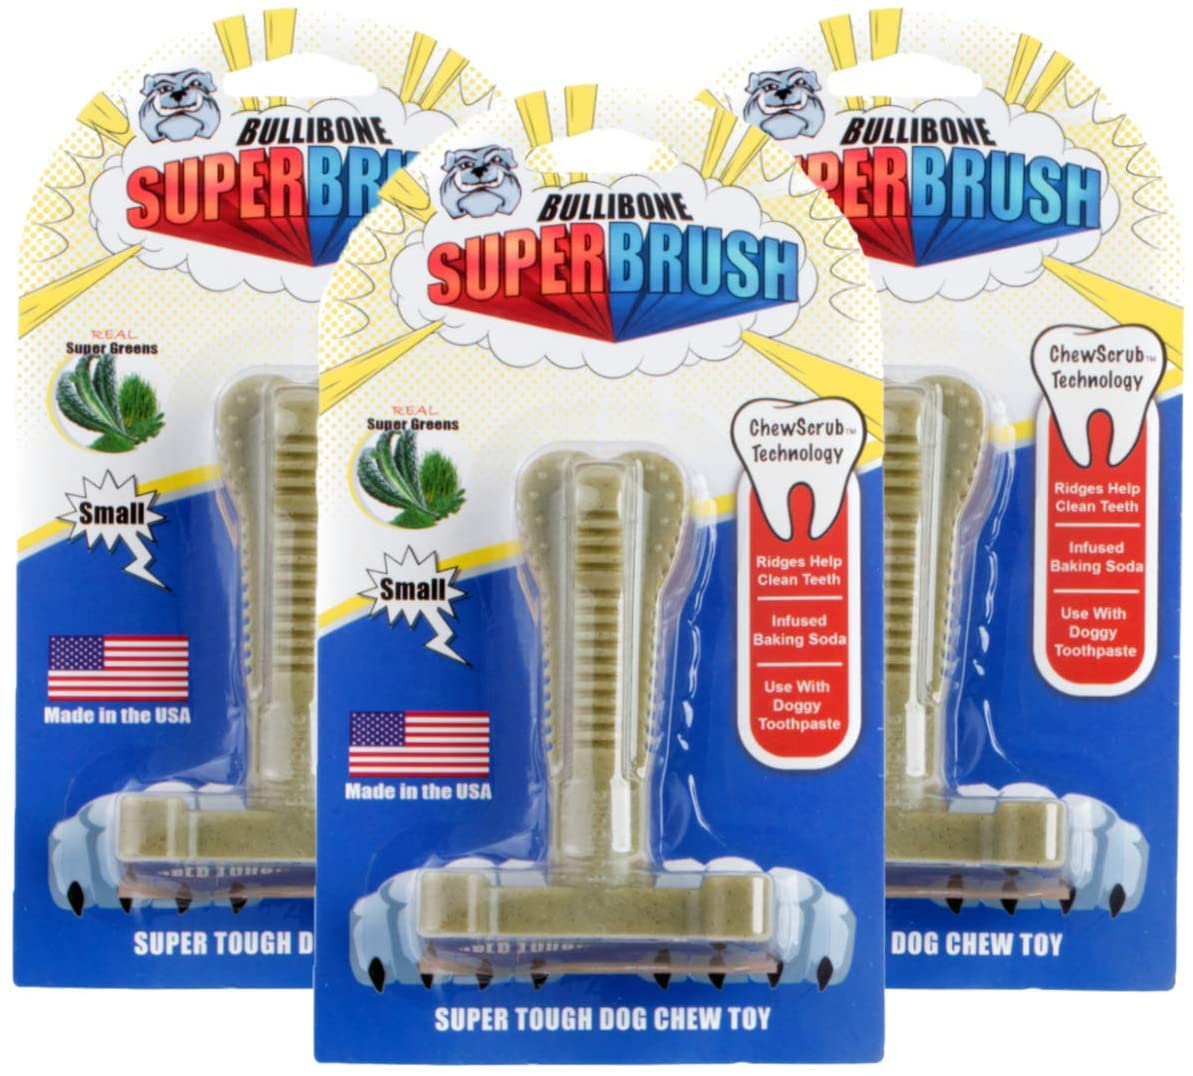 Bullibone SuperBrush: Dog Teeth Cleaning Brushing Toothbrush Stick - Long Lasting Nylon Chew Toy for Oral Care and Dental Health